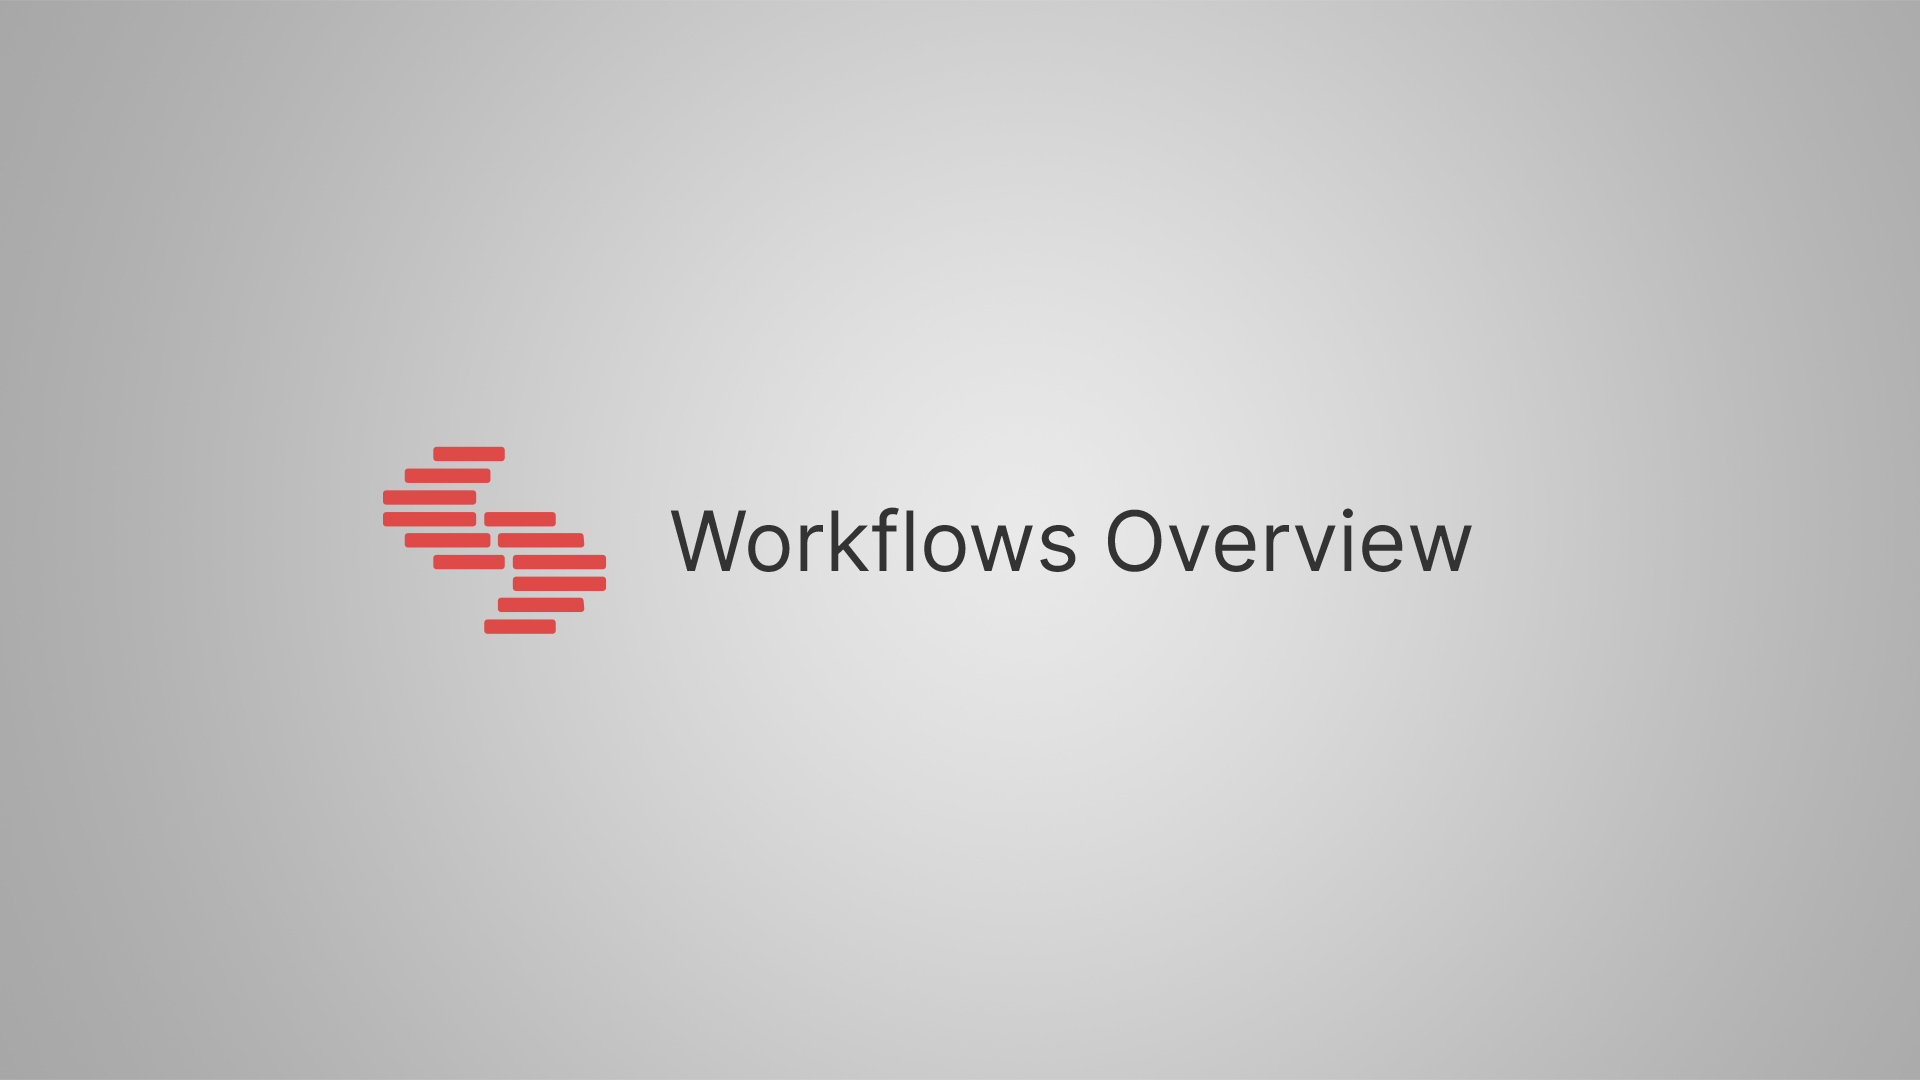 About Workflows